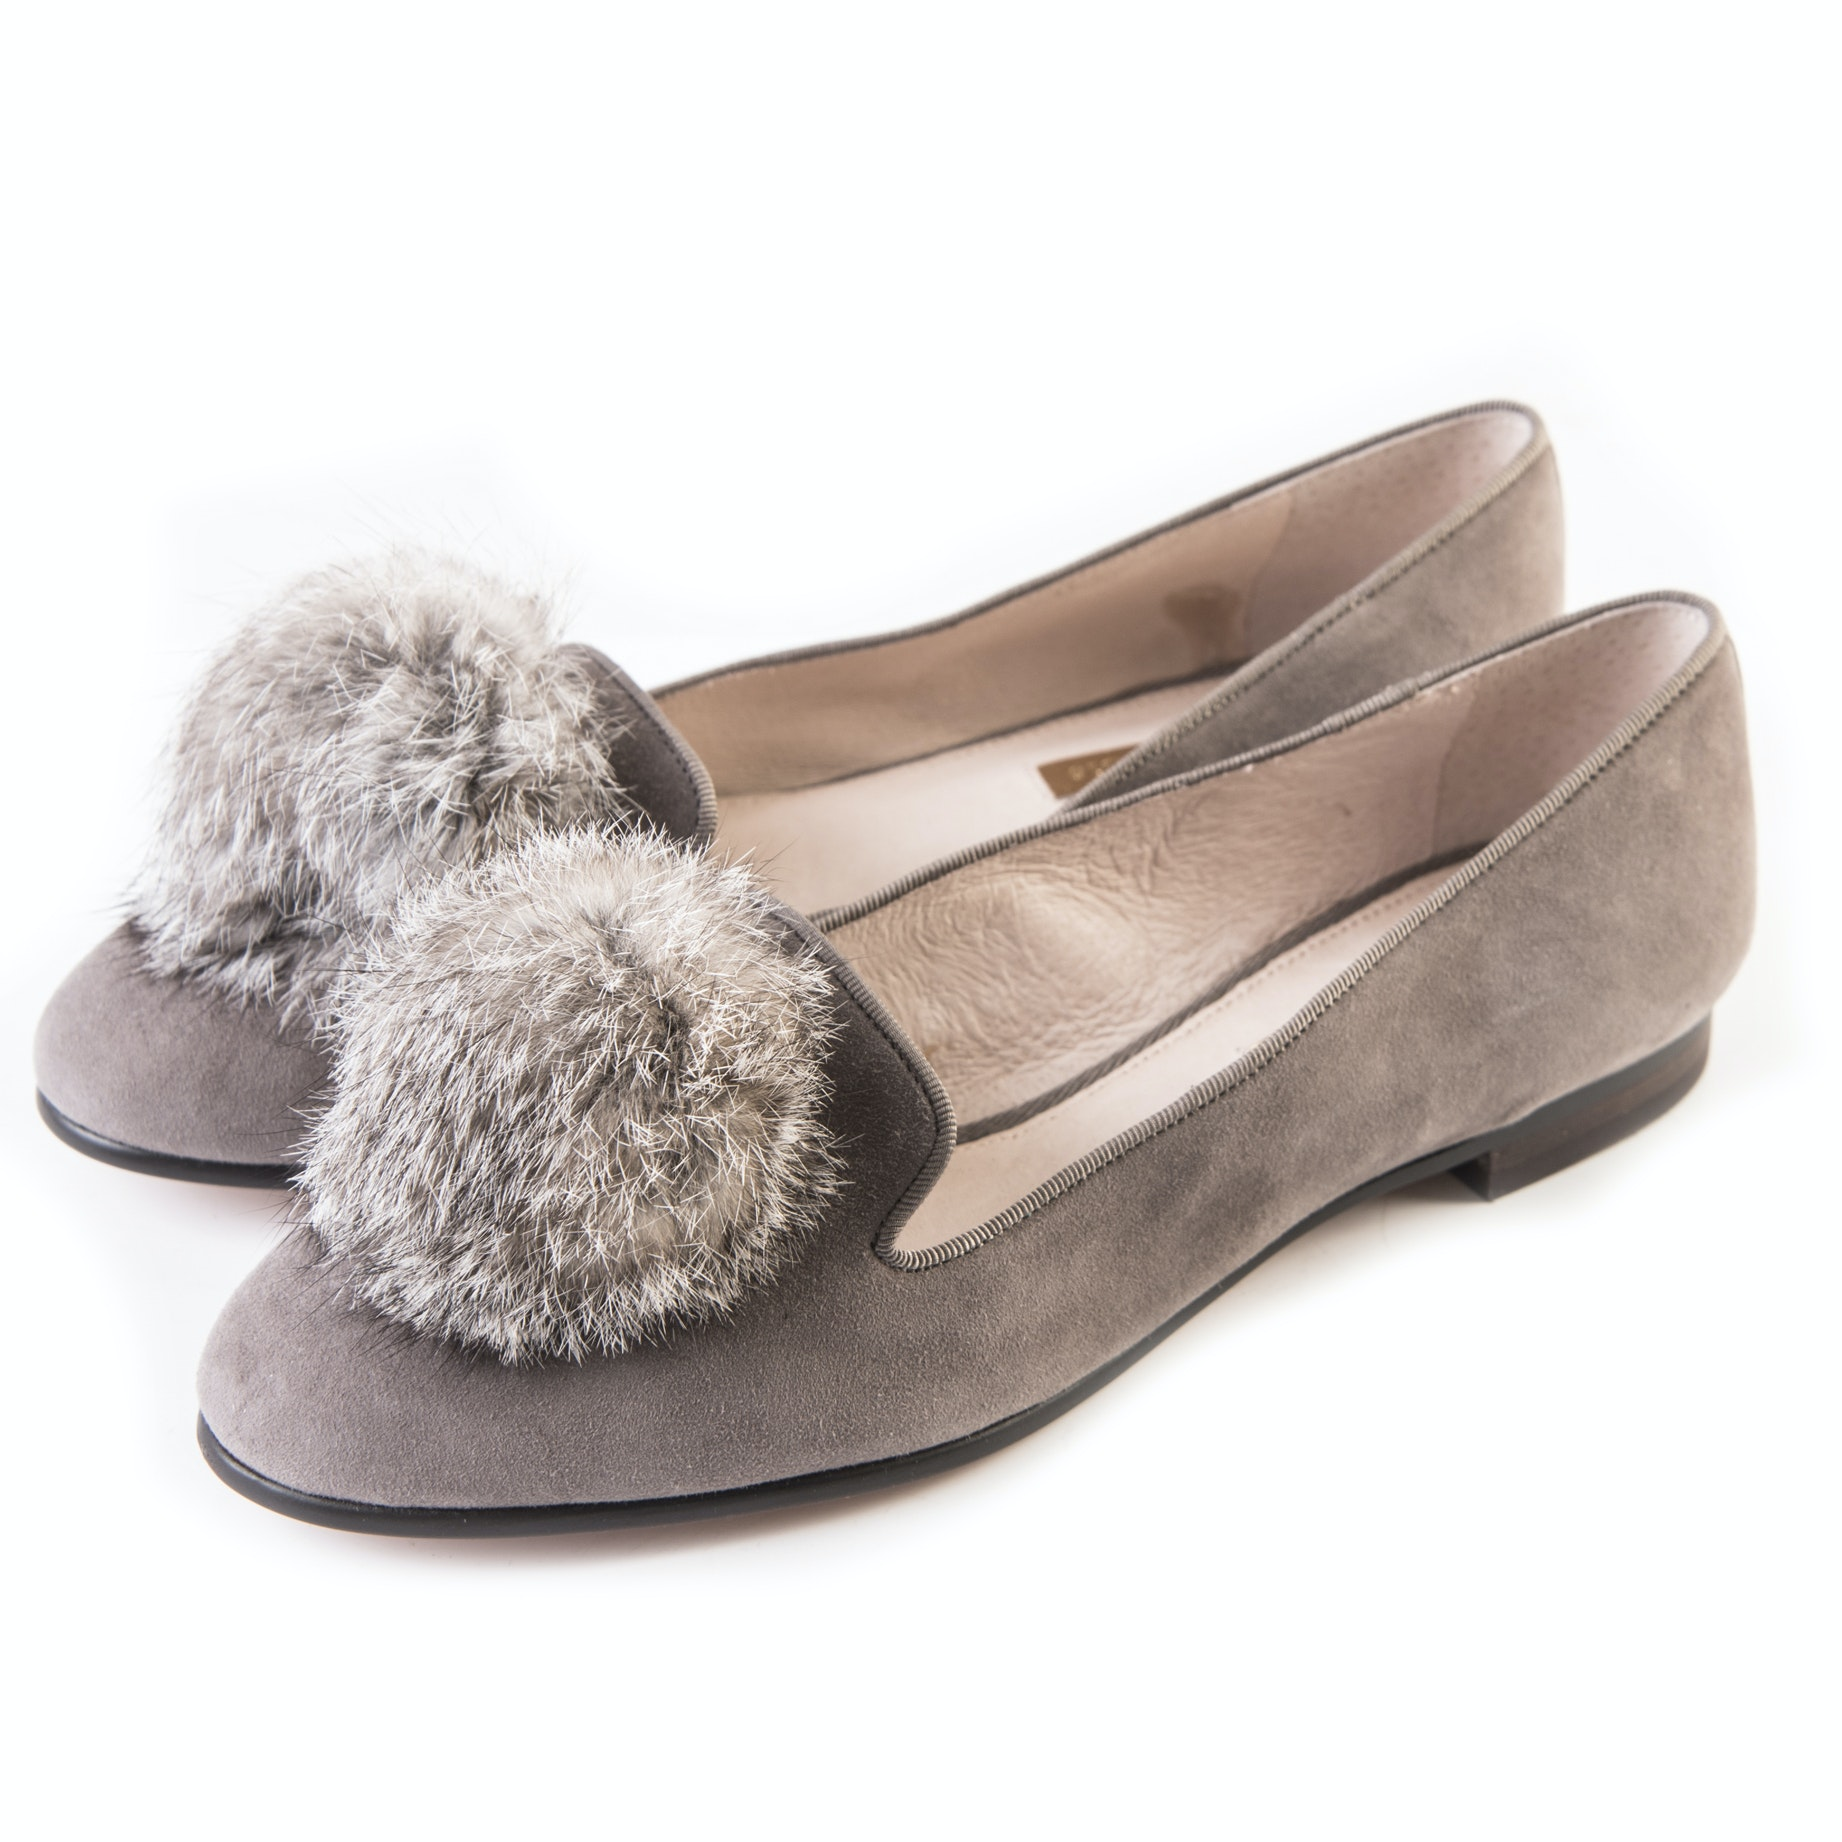 """Louise et Cie """"Andres"""" Rabbit Fur Pompom Leather Loafers Trimmed in Grosgrain"""